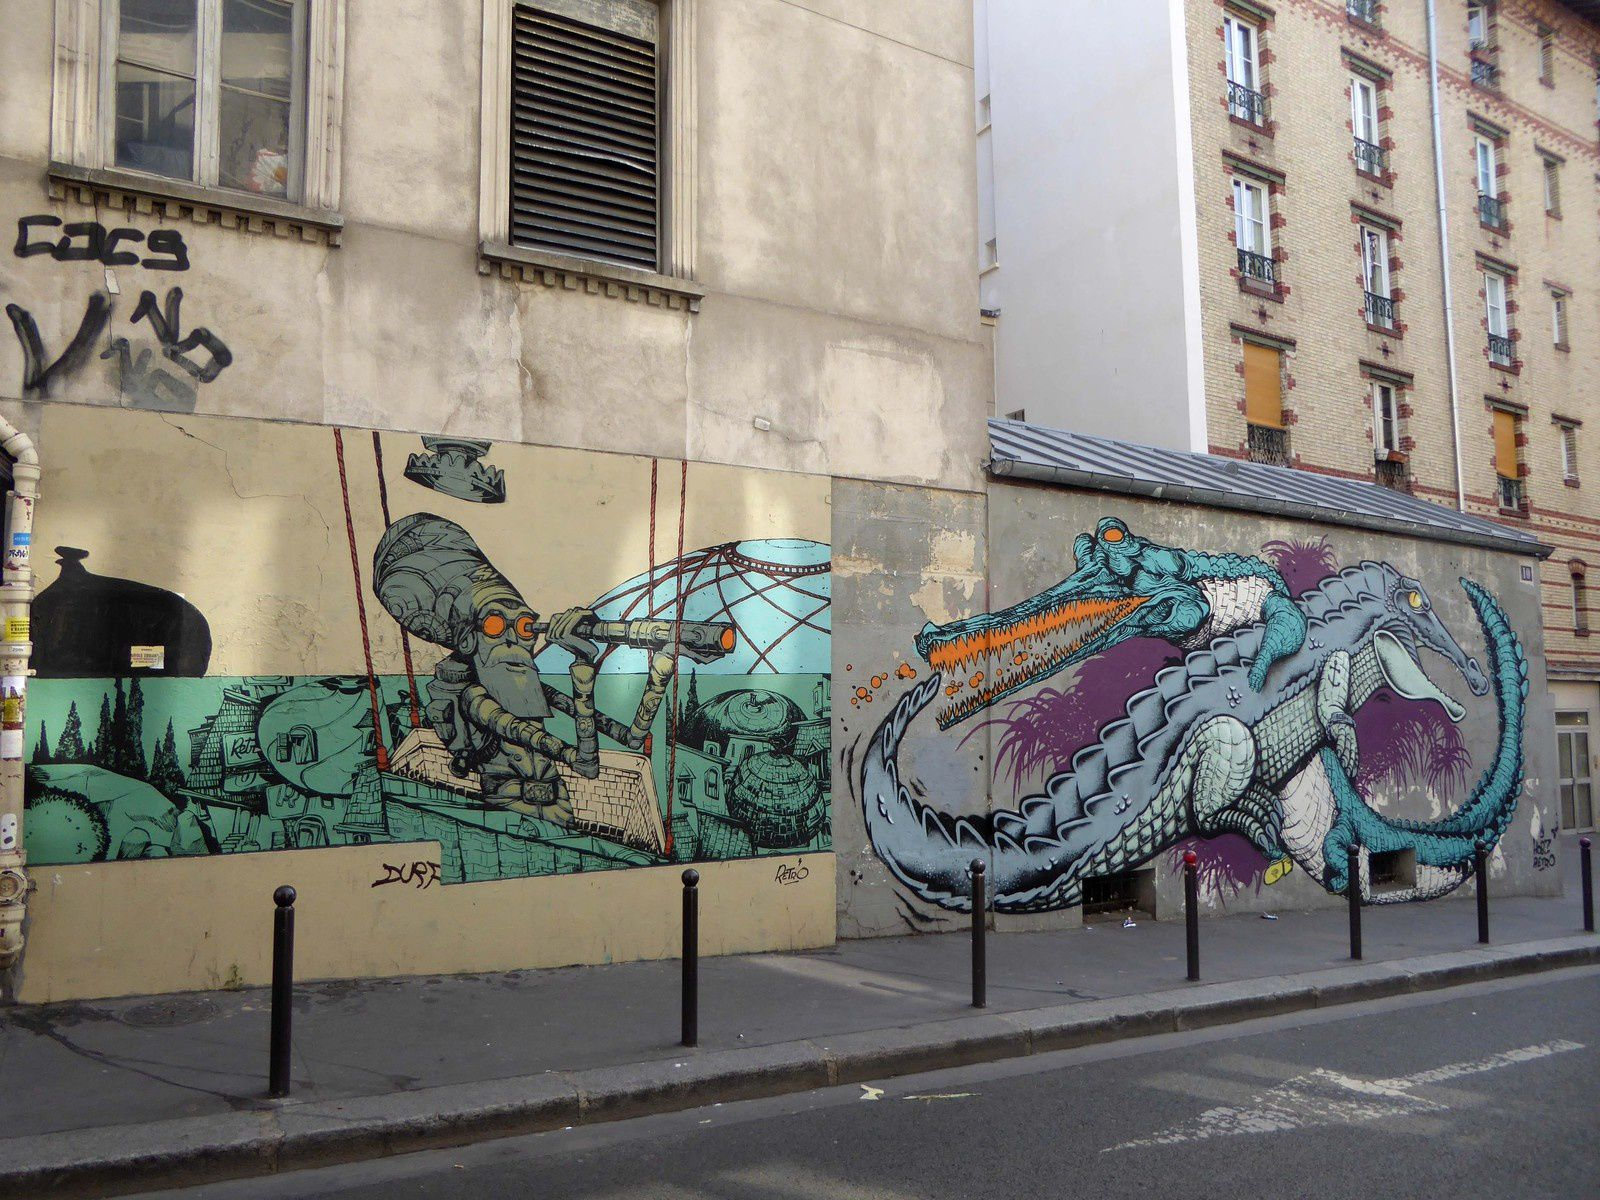 Paris graffiti (1)